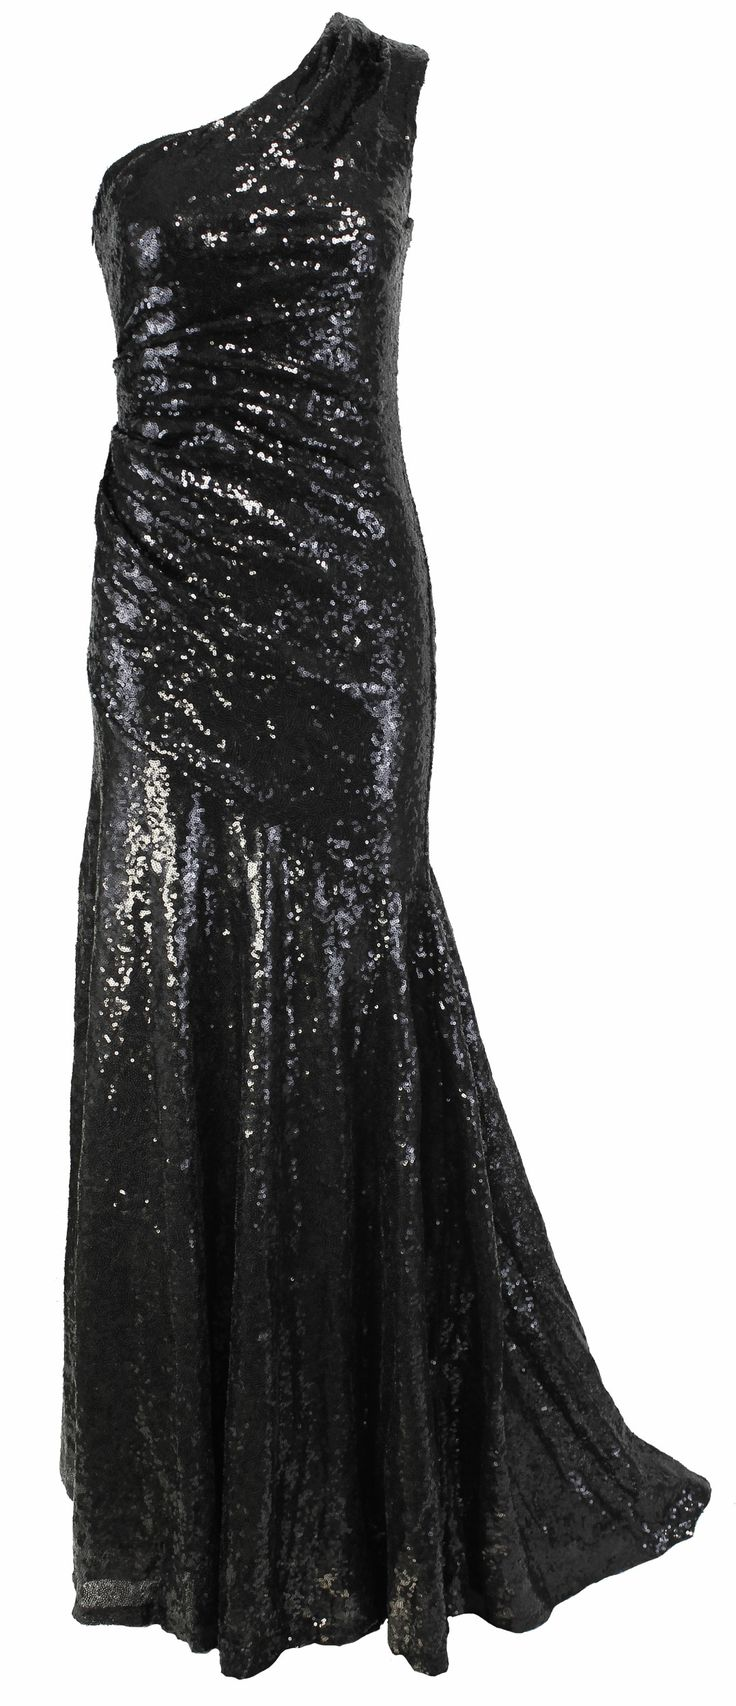 WOMENS FISHTAIL ONE SHOULDER SEQUIN SHEATH COCKTAIL MAXI LADIES EVENING DRESS